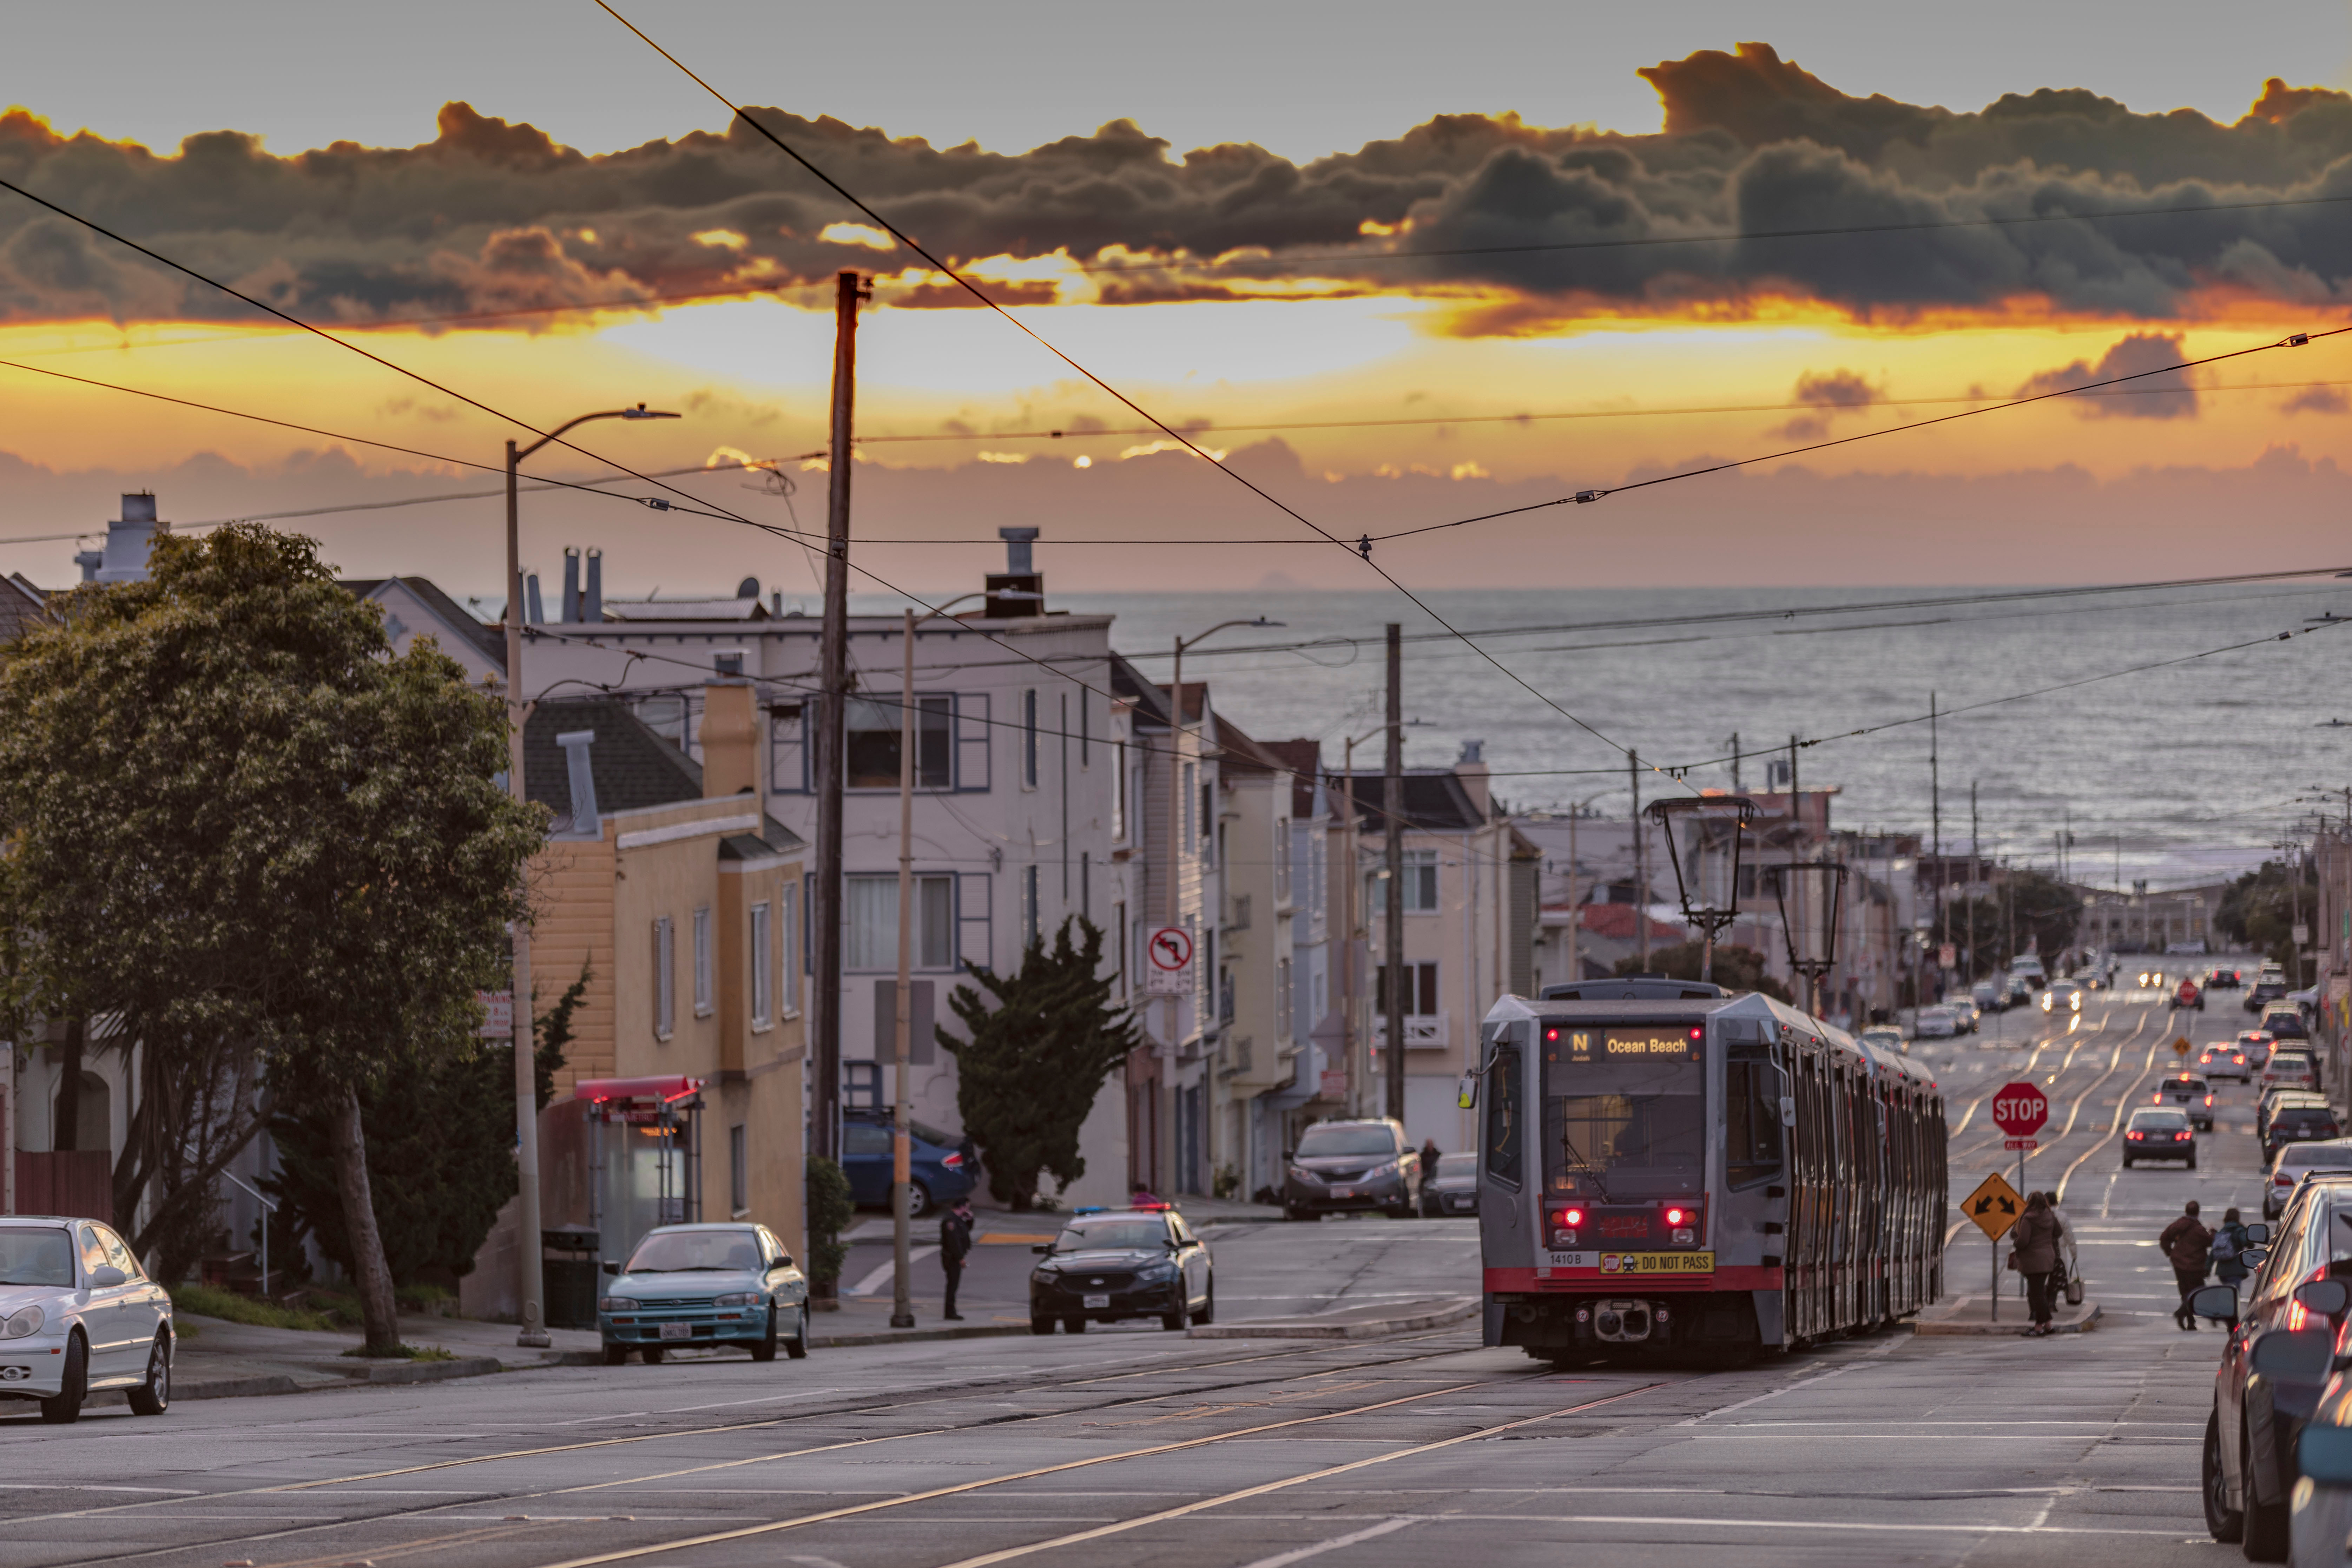 A sunset breaks through gray clouds above a street with a gray streetcar and homes.